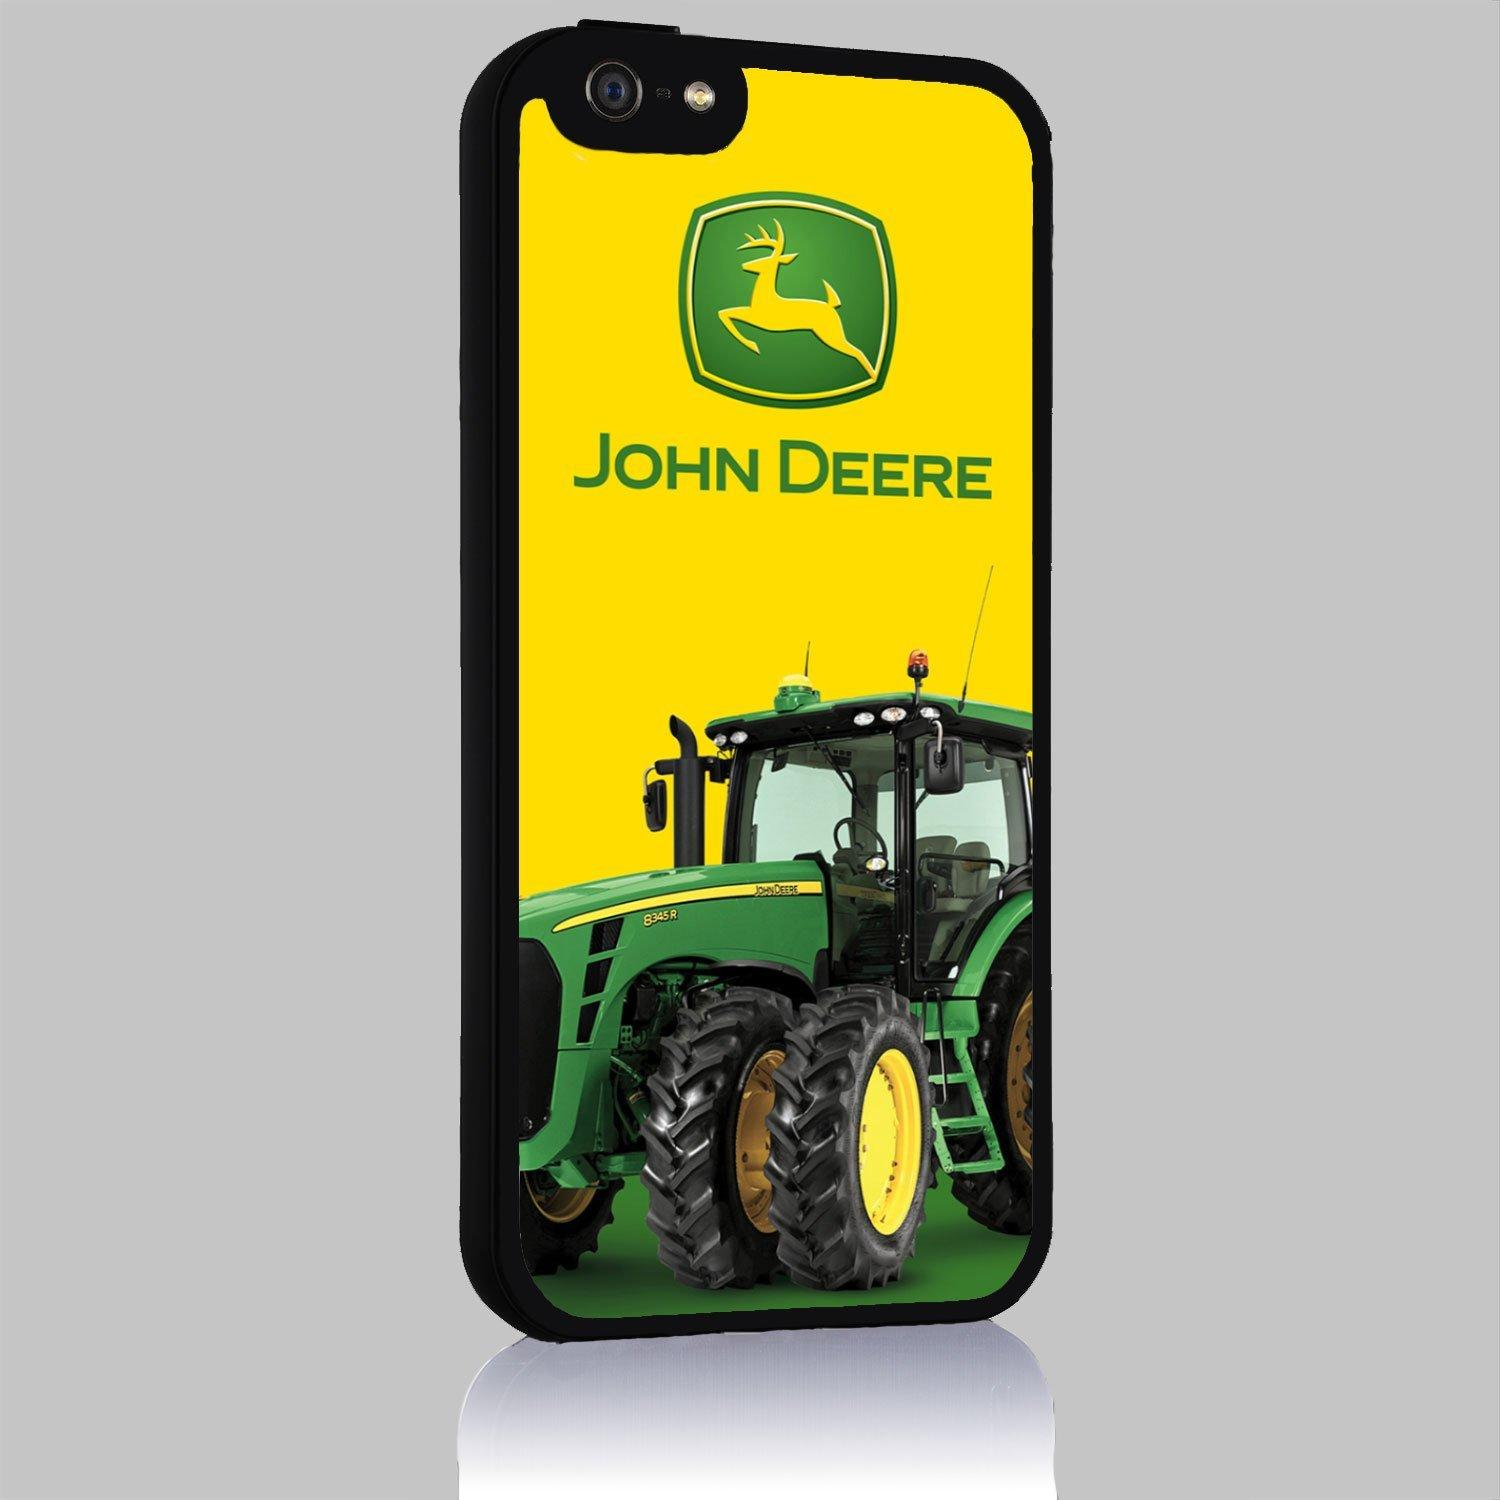 John Deere for Iphone 4 4s 5 5c 6 6plus from Amazon | RCO